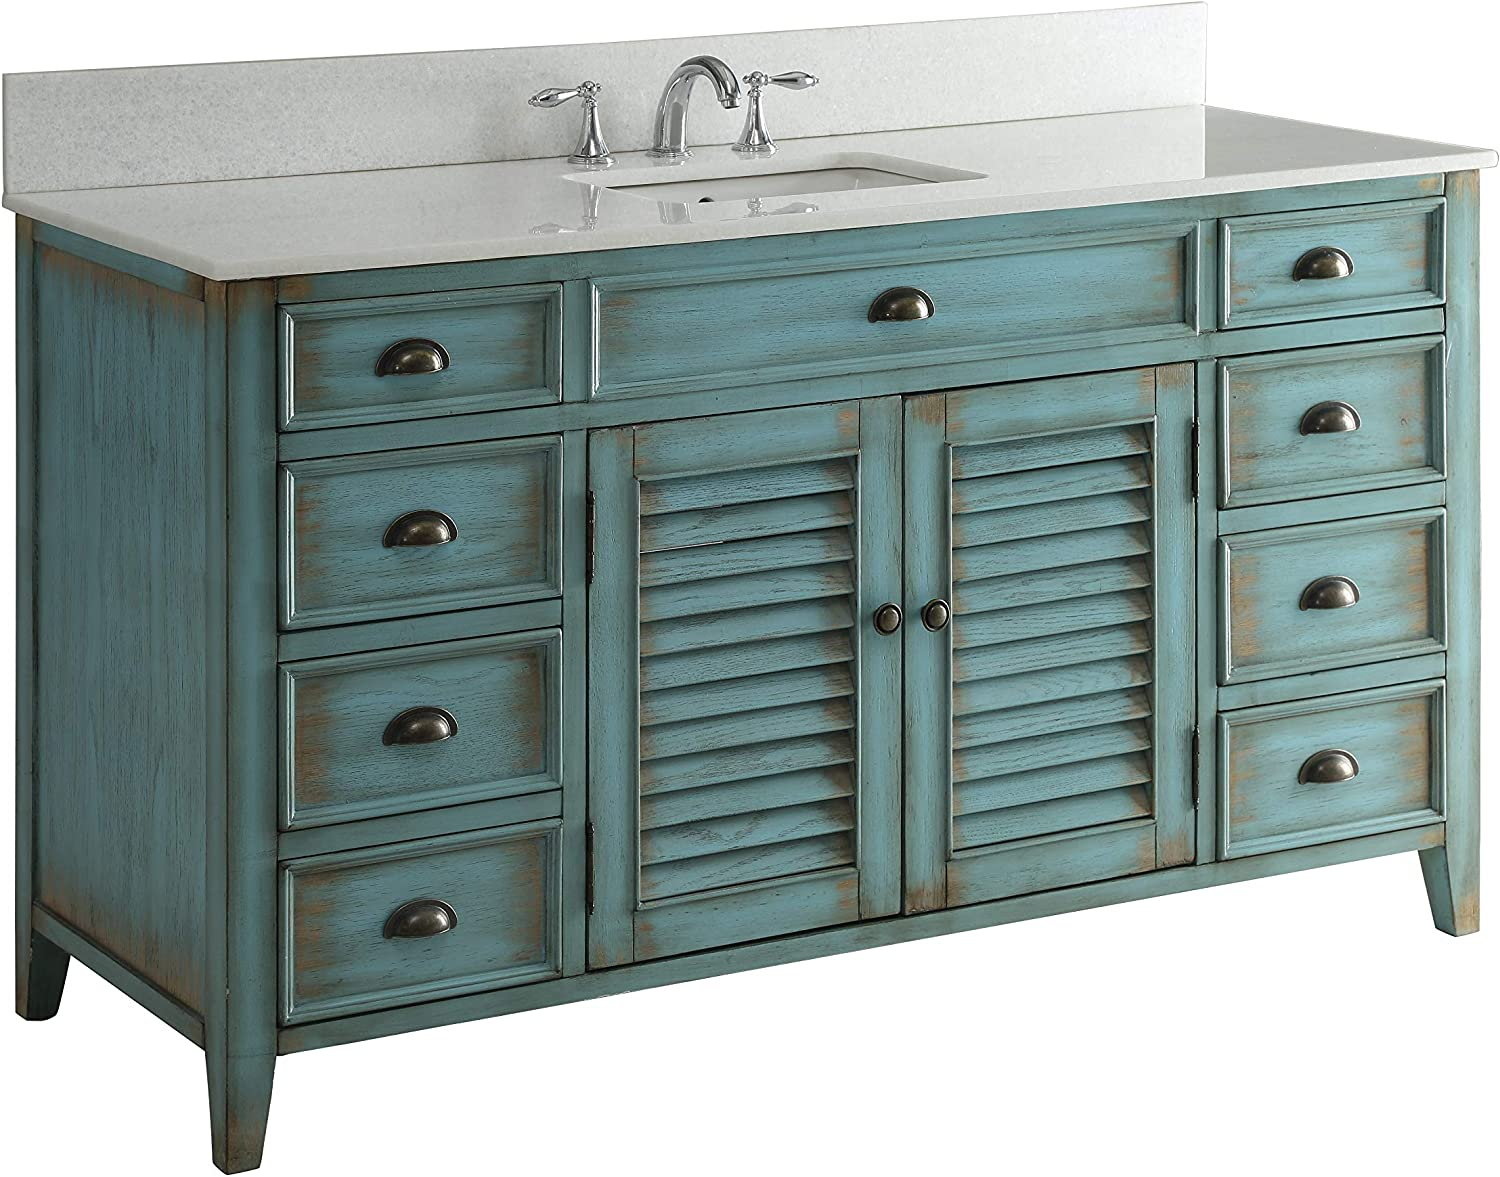 60 Cottage Look Single Sink Abbeville Bathroom Sink Vanity Model CF-66323BU-60